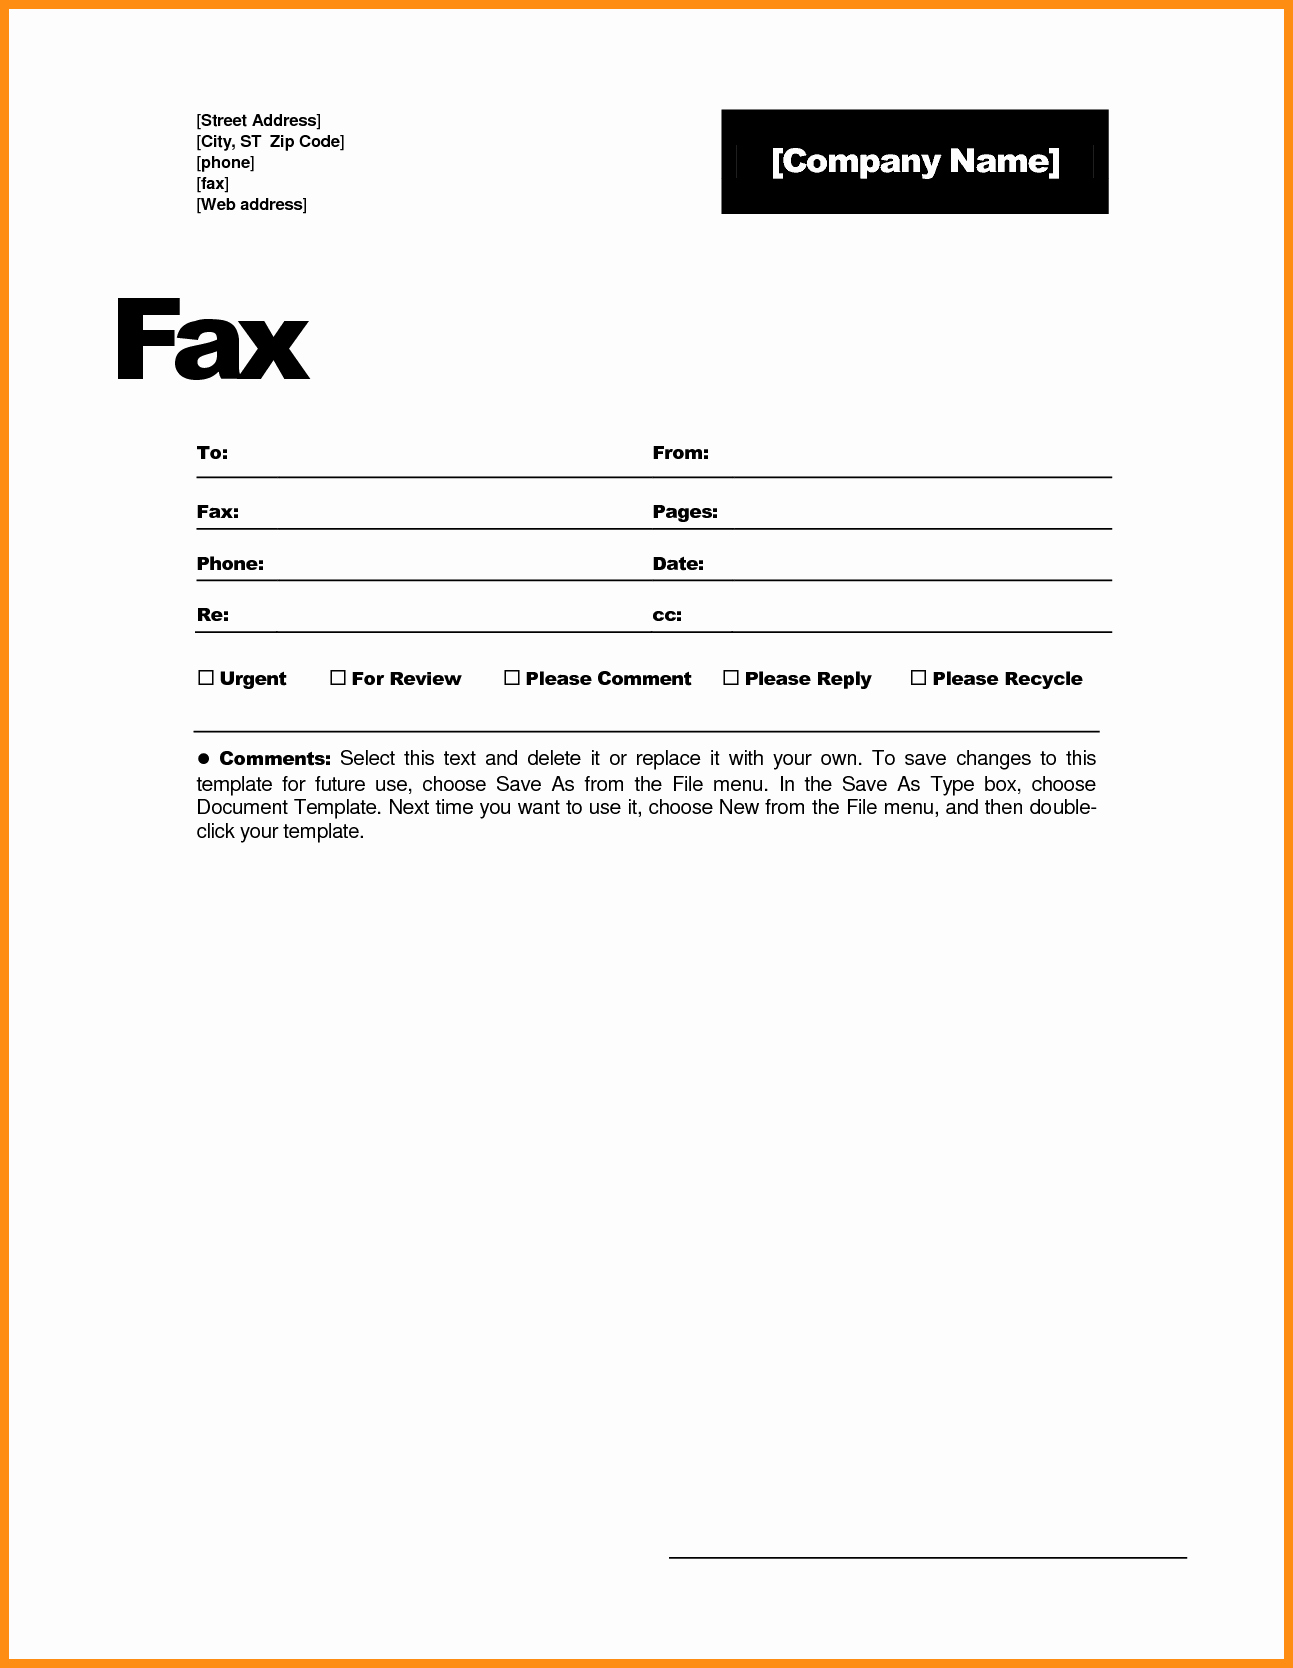 Fax Cover Sheet Printable Free Best Of 6 Free Fax Cover Sheet Template Word